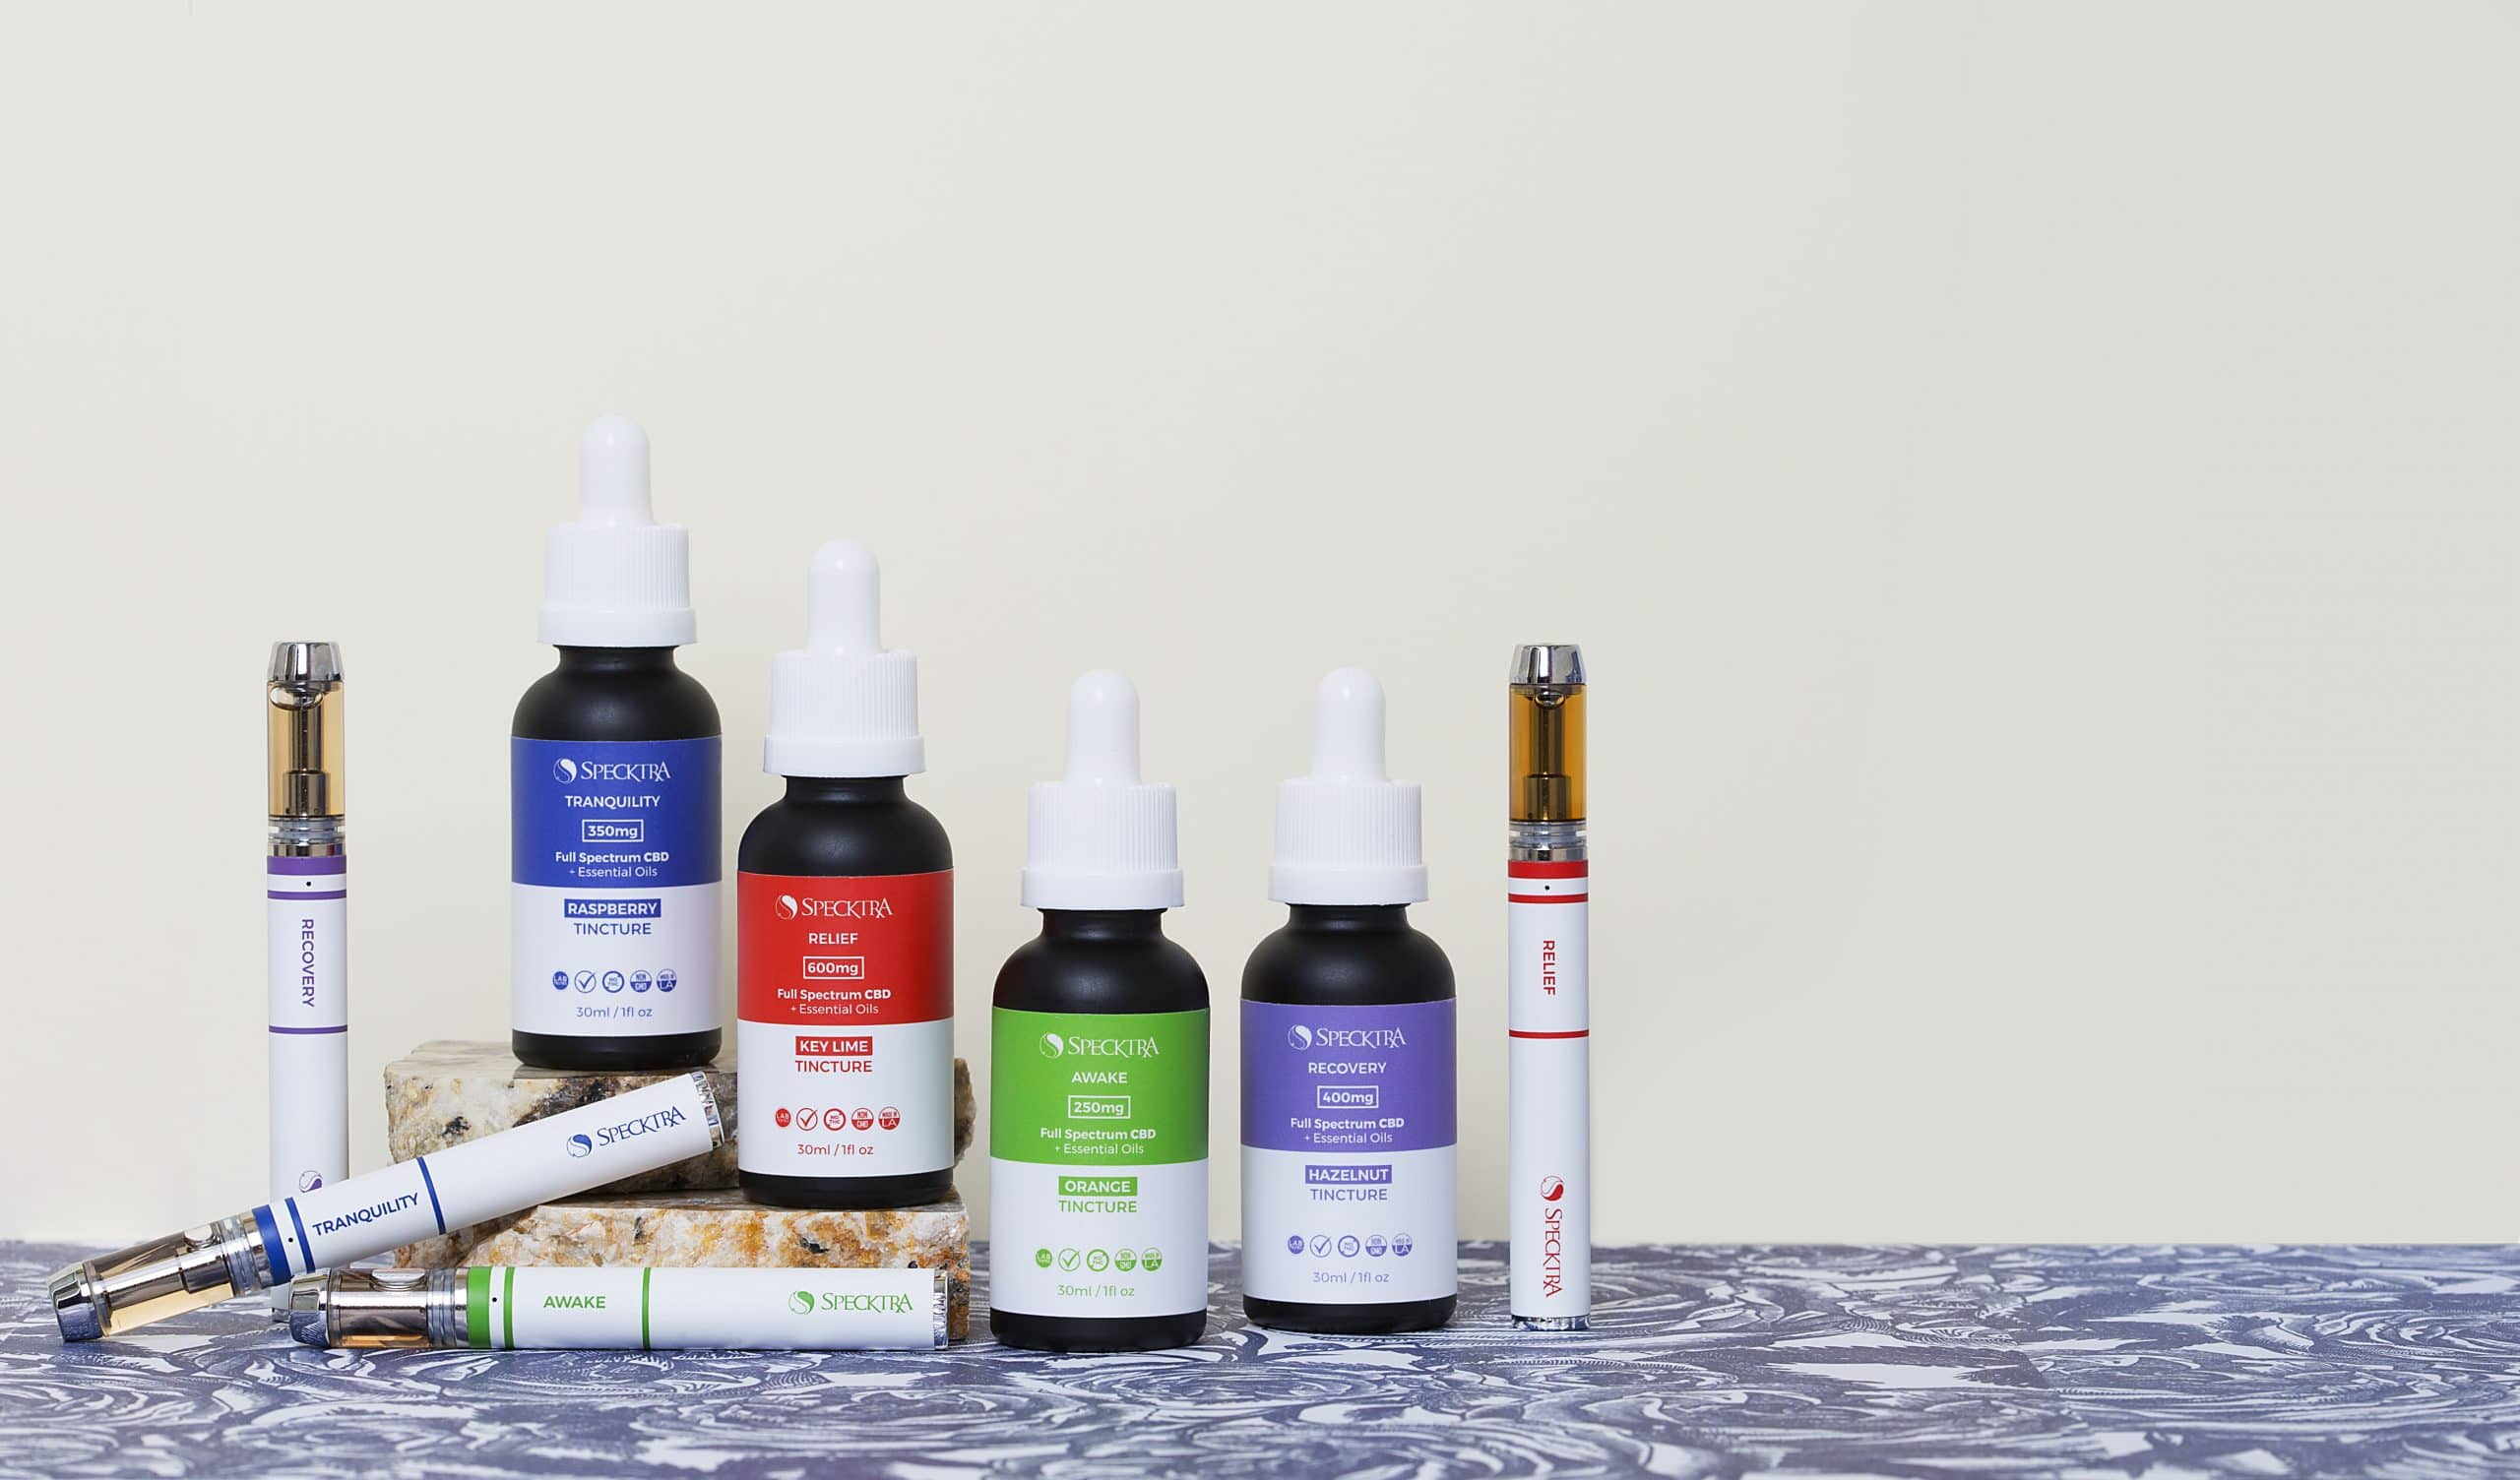 Specktra Products Showcase